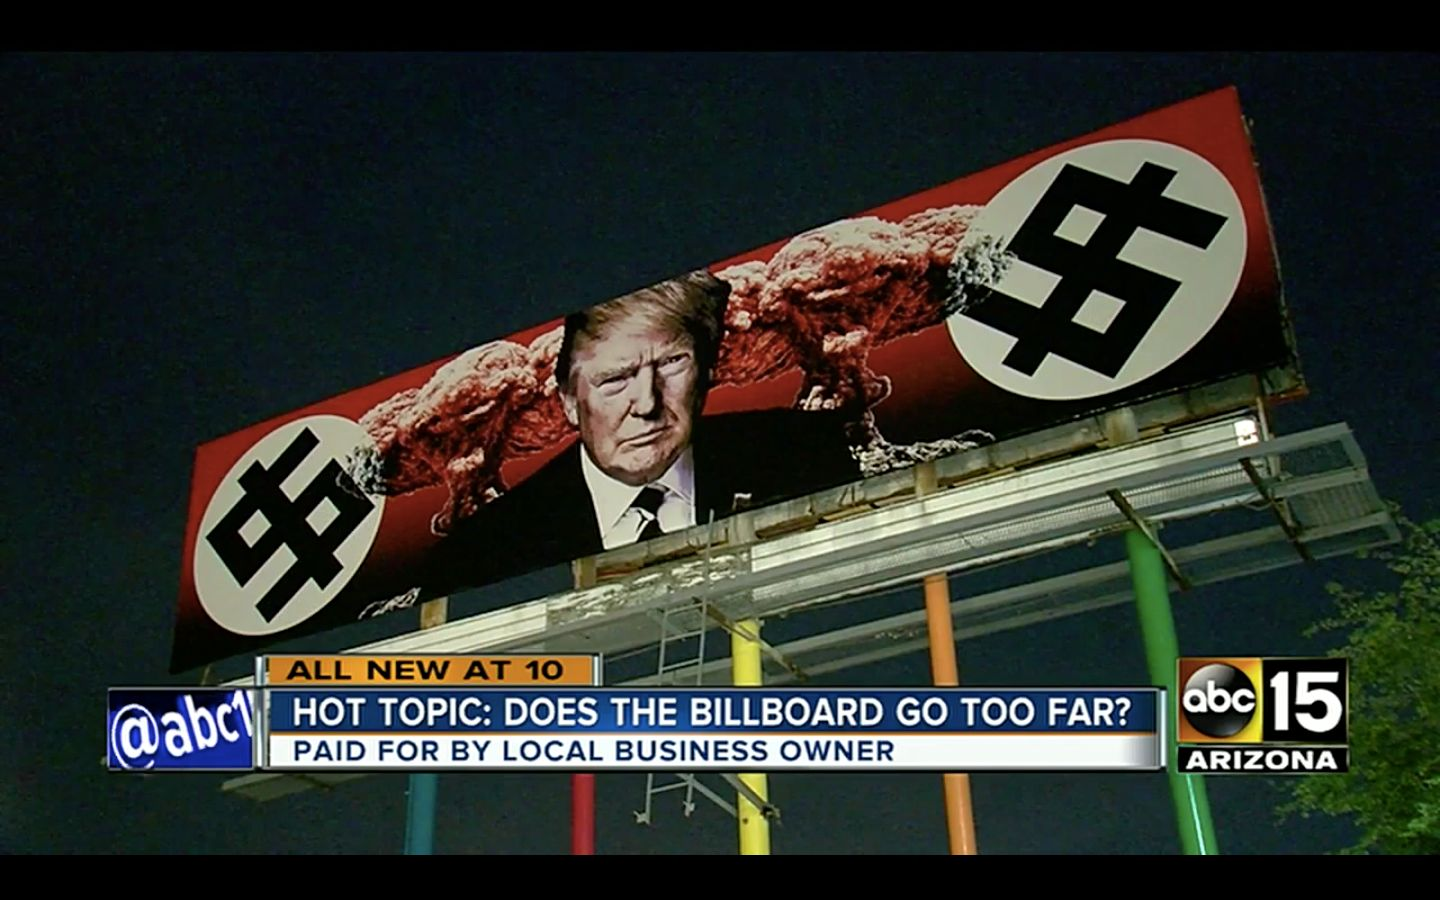 This anti-Trump billboard in Arizona has drawn heated opinions about its design, some who say its Nazi imagery goes too far.